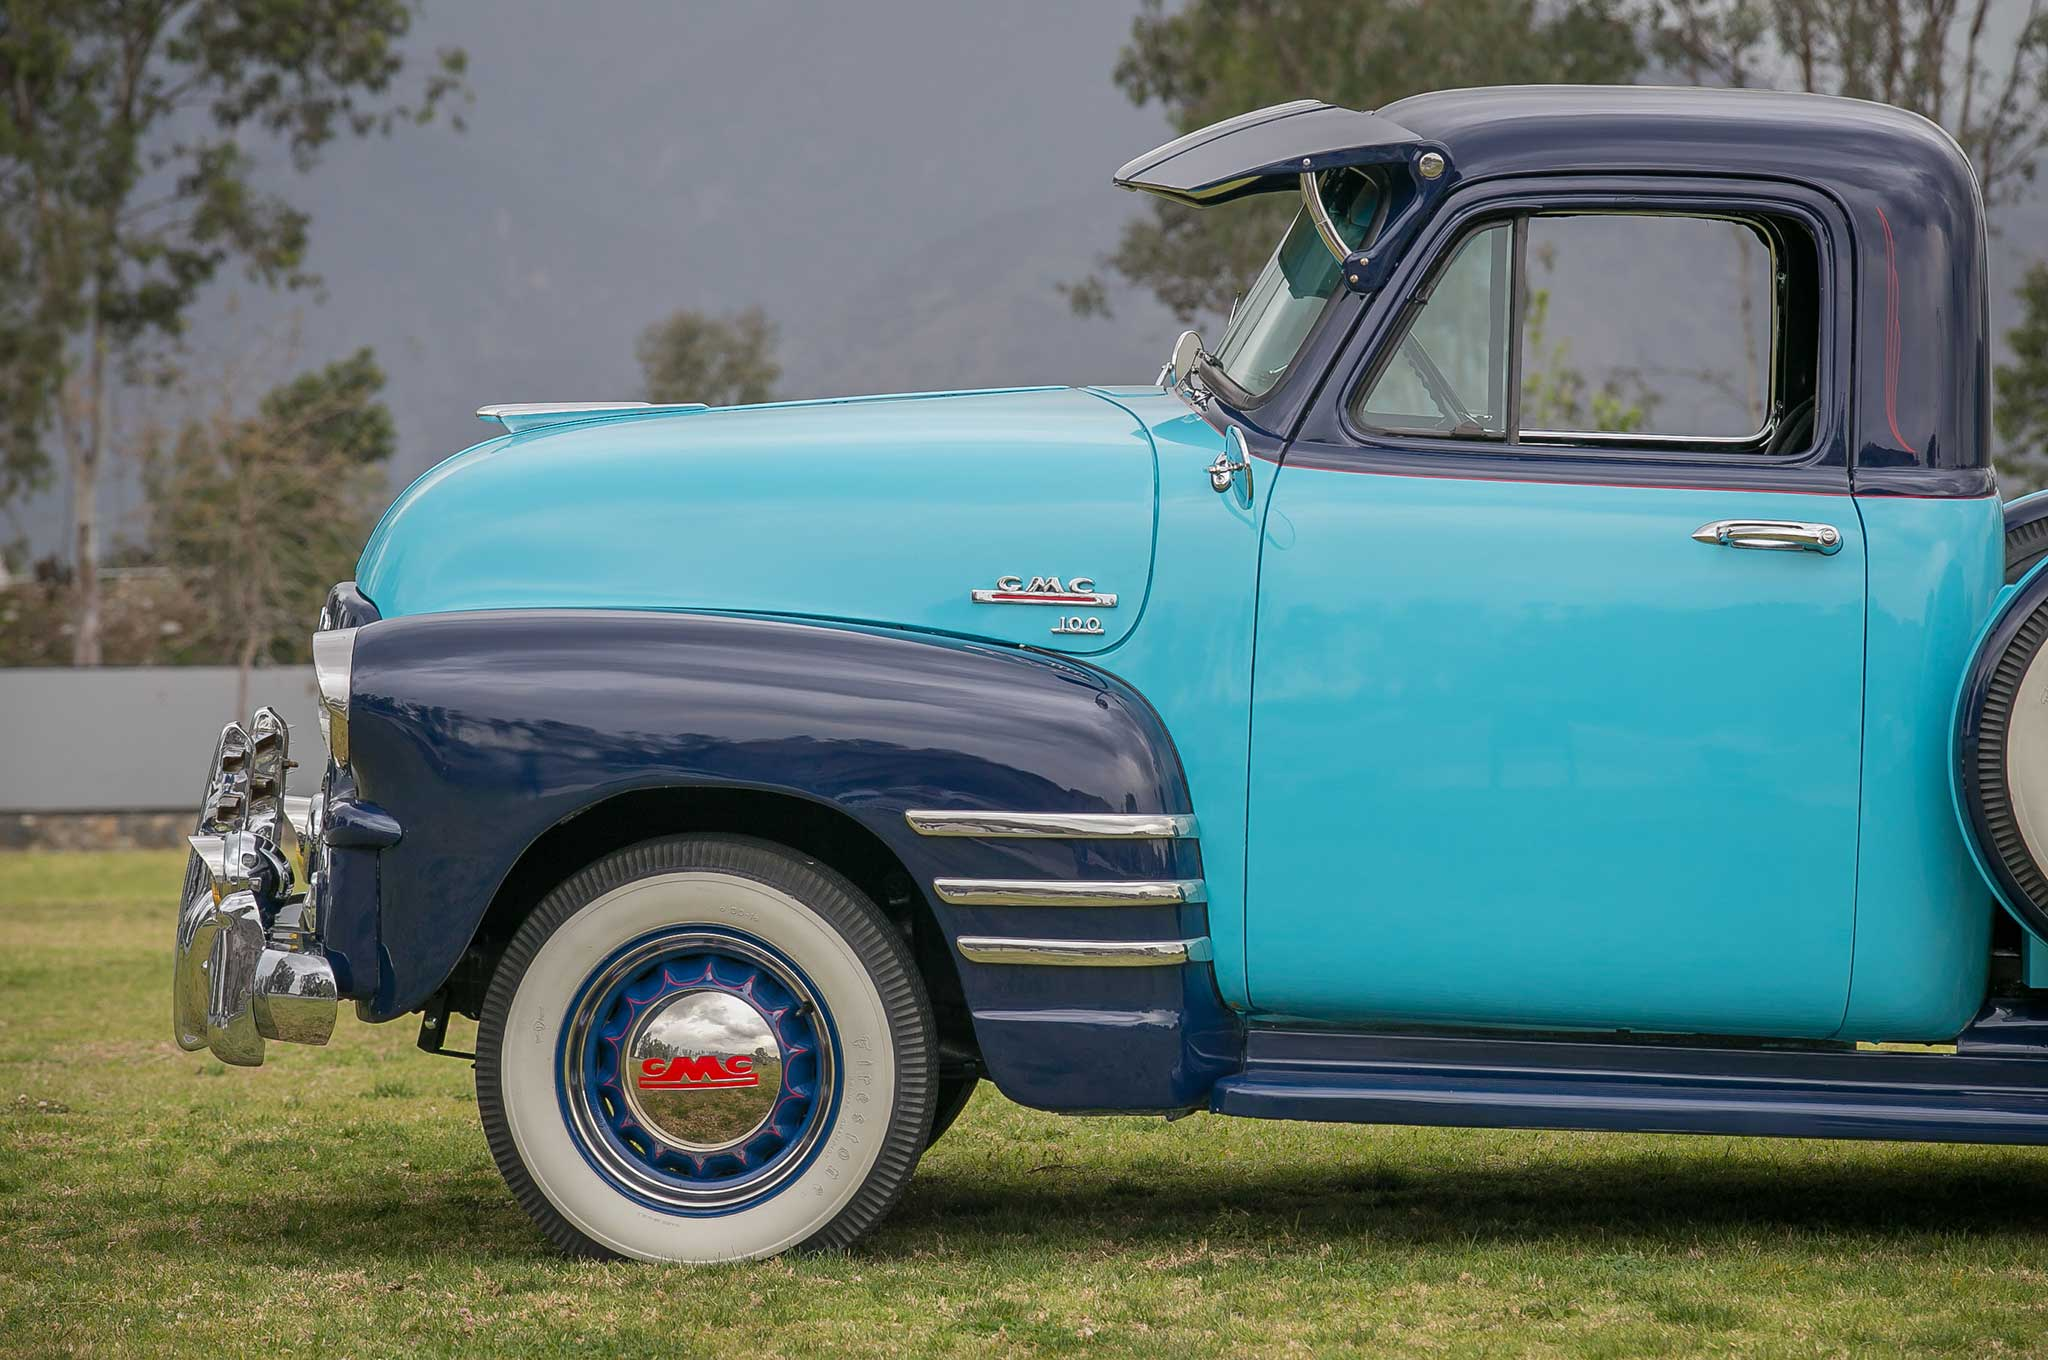 1954 GMC Pickup - Generational GMC - Lowrider